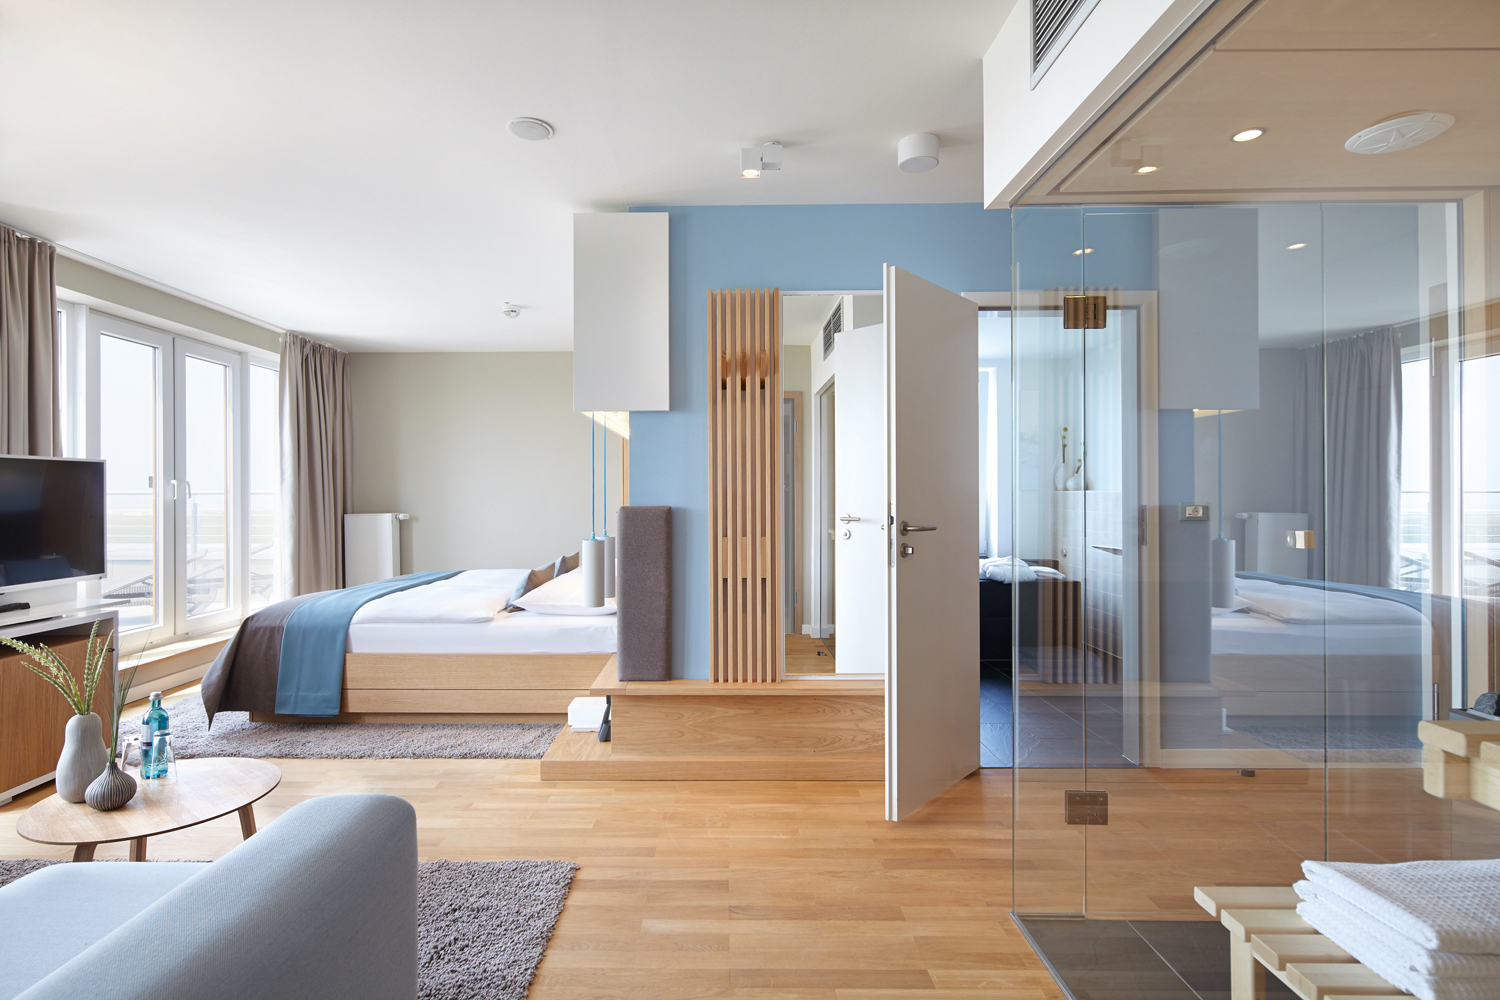 St peter ording strandgut resort the blog for Design hotel nordsee